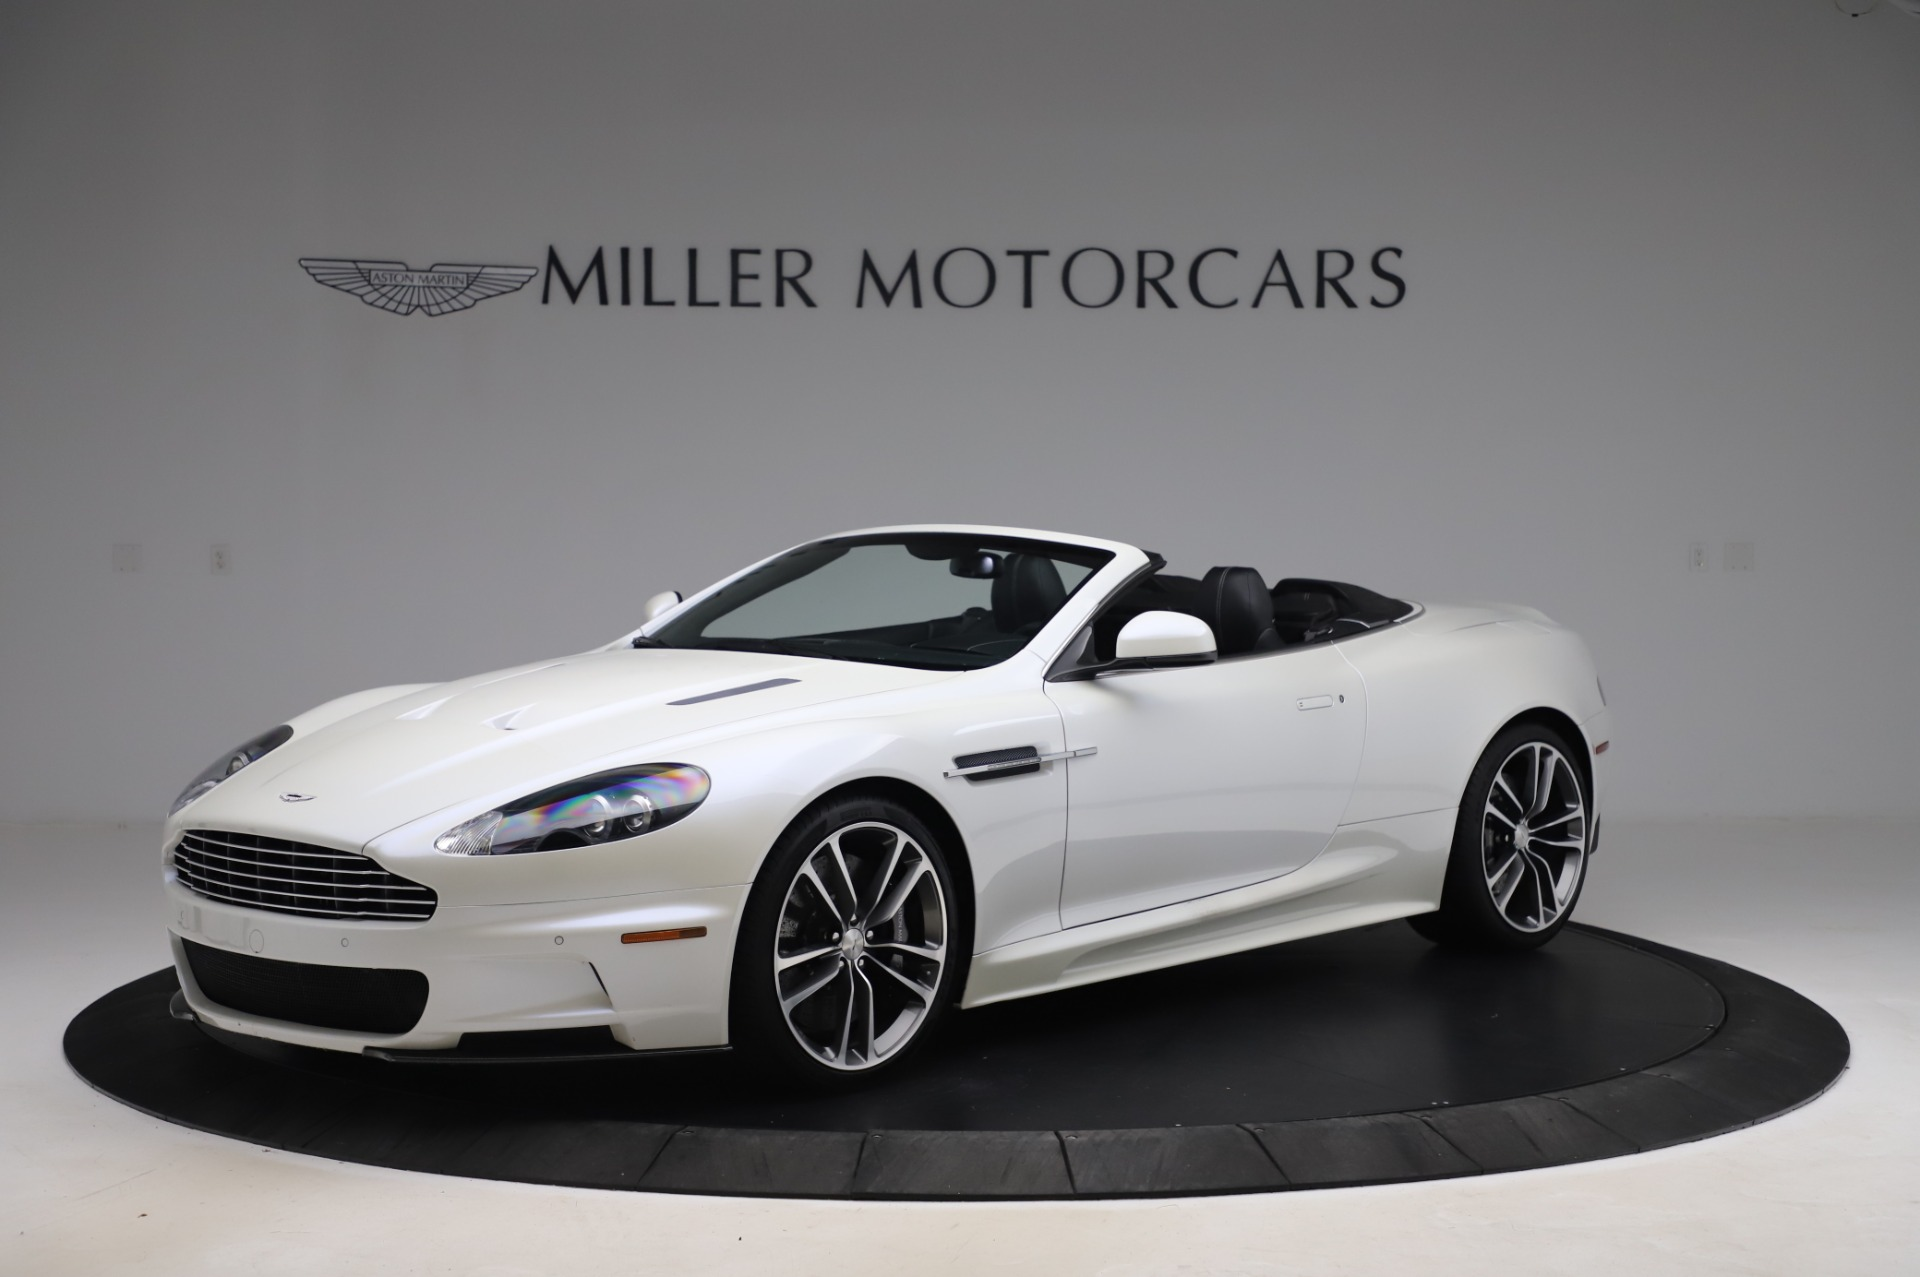 Used 2010 Aston Martin DBS Volante for sale $104,900 at Rolls-Royce Motor Cars Greenwich in Greenwich CT 06830 1